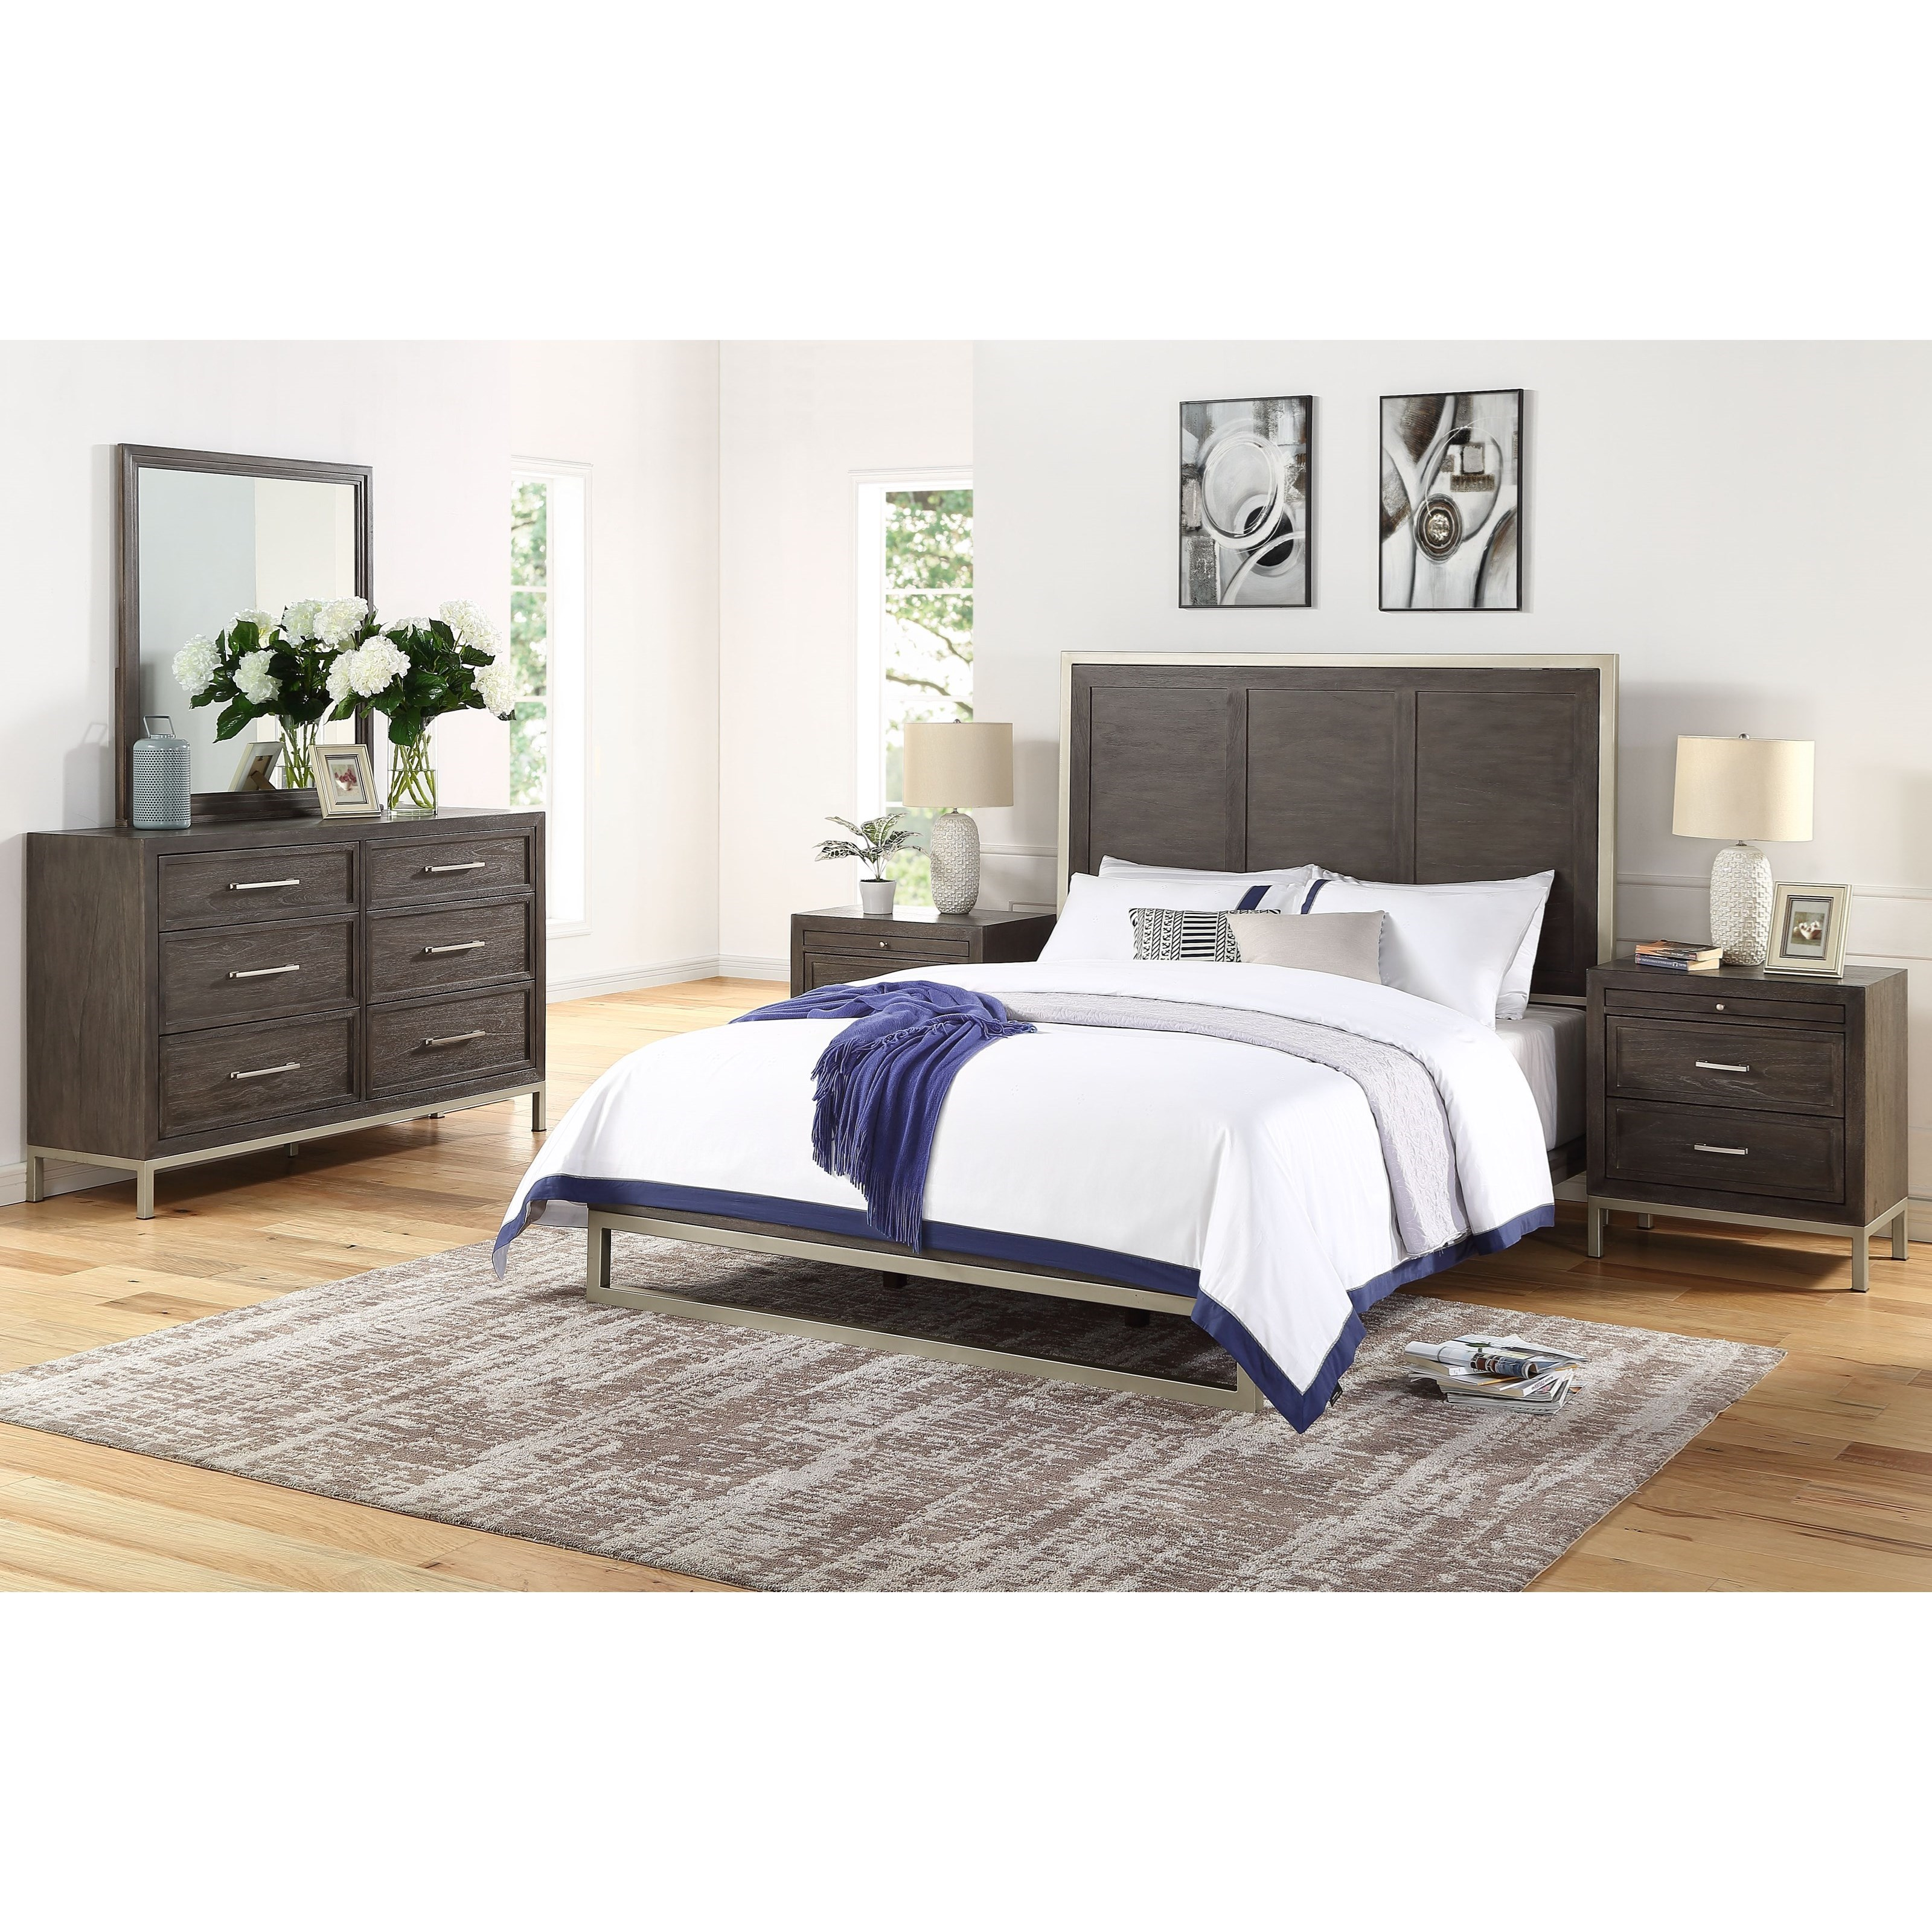 Broomfield Queen Bedroom Group by Star at EFO Furniture Outlet